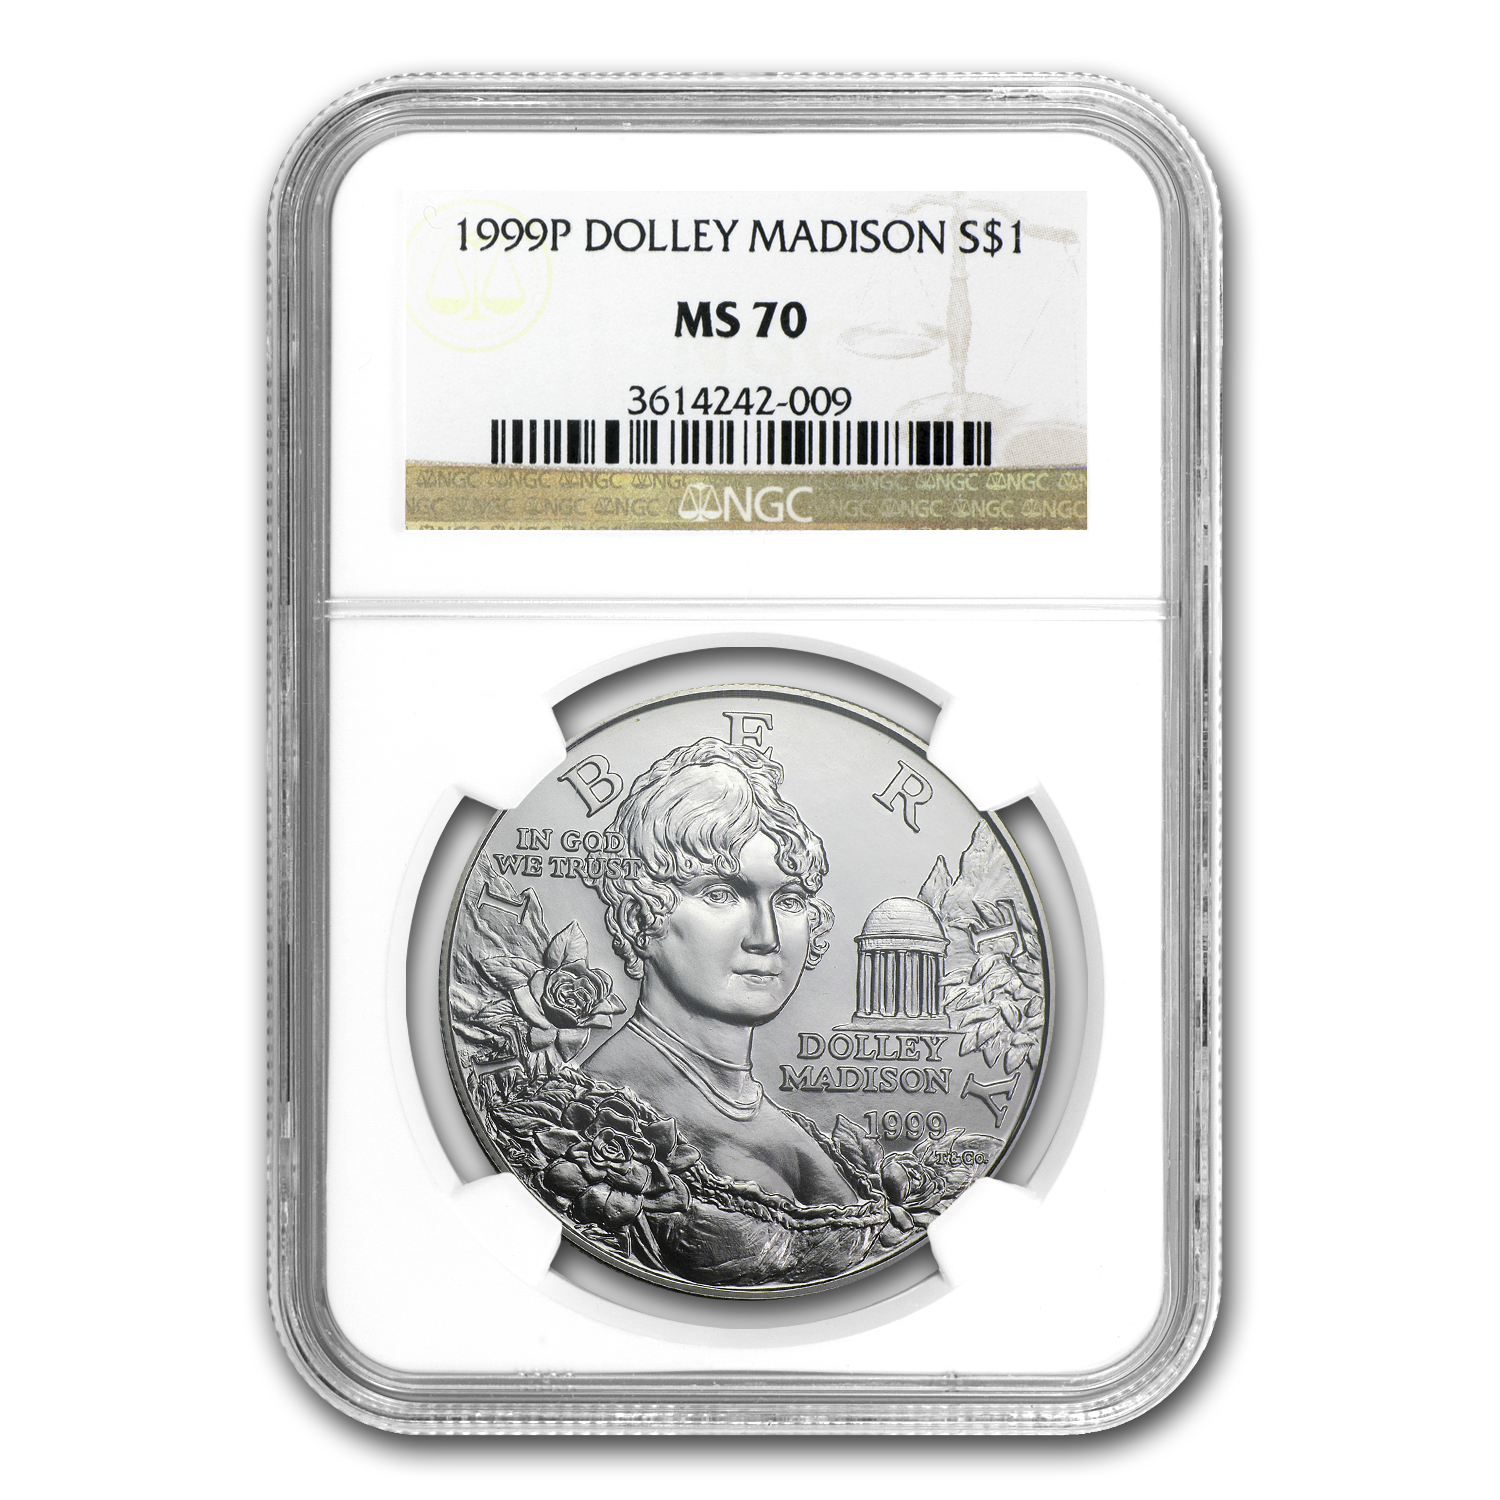 1999-P Dolley Madison $1 Silver Commem MS-70 NGC